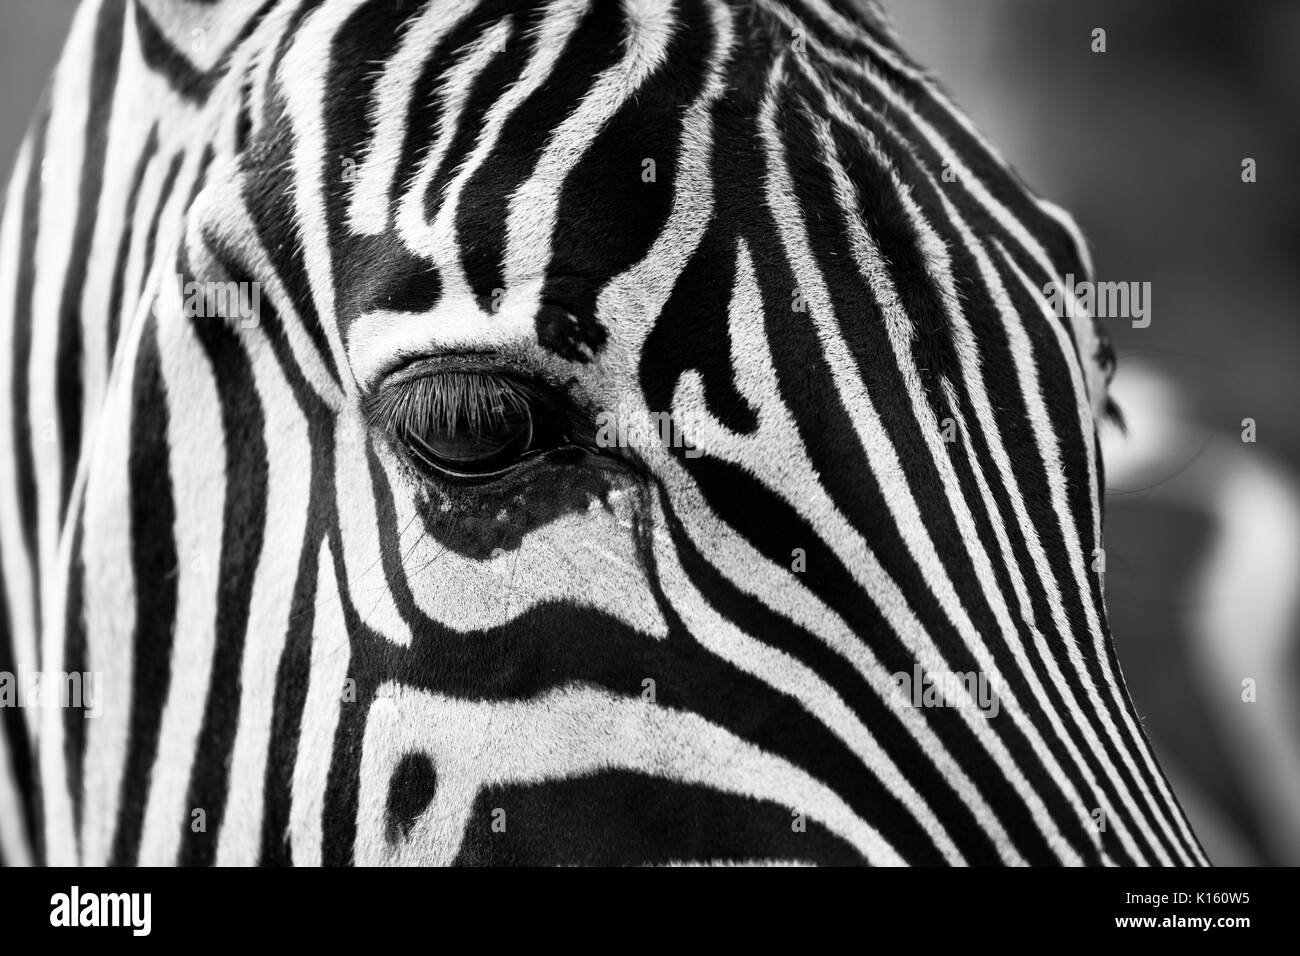 Close up of a zebras eye - Stock Image